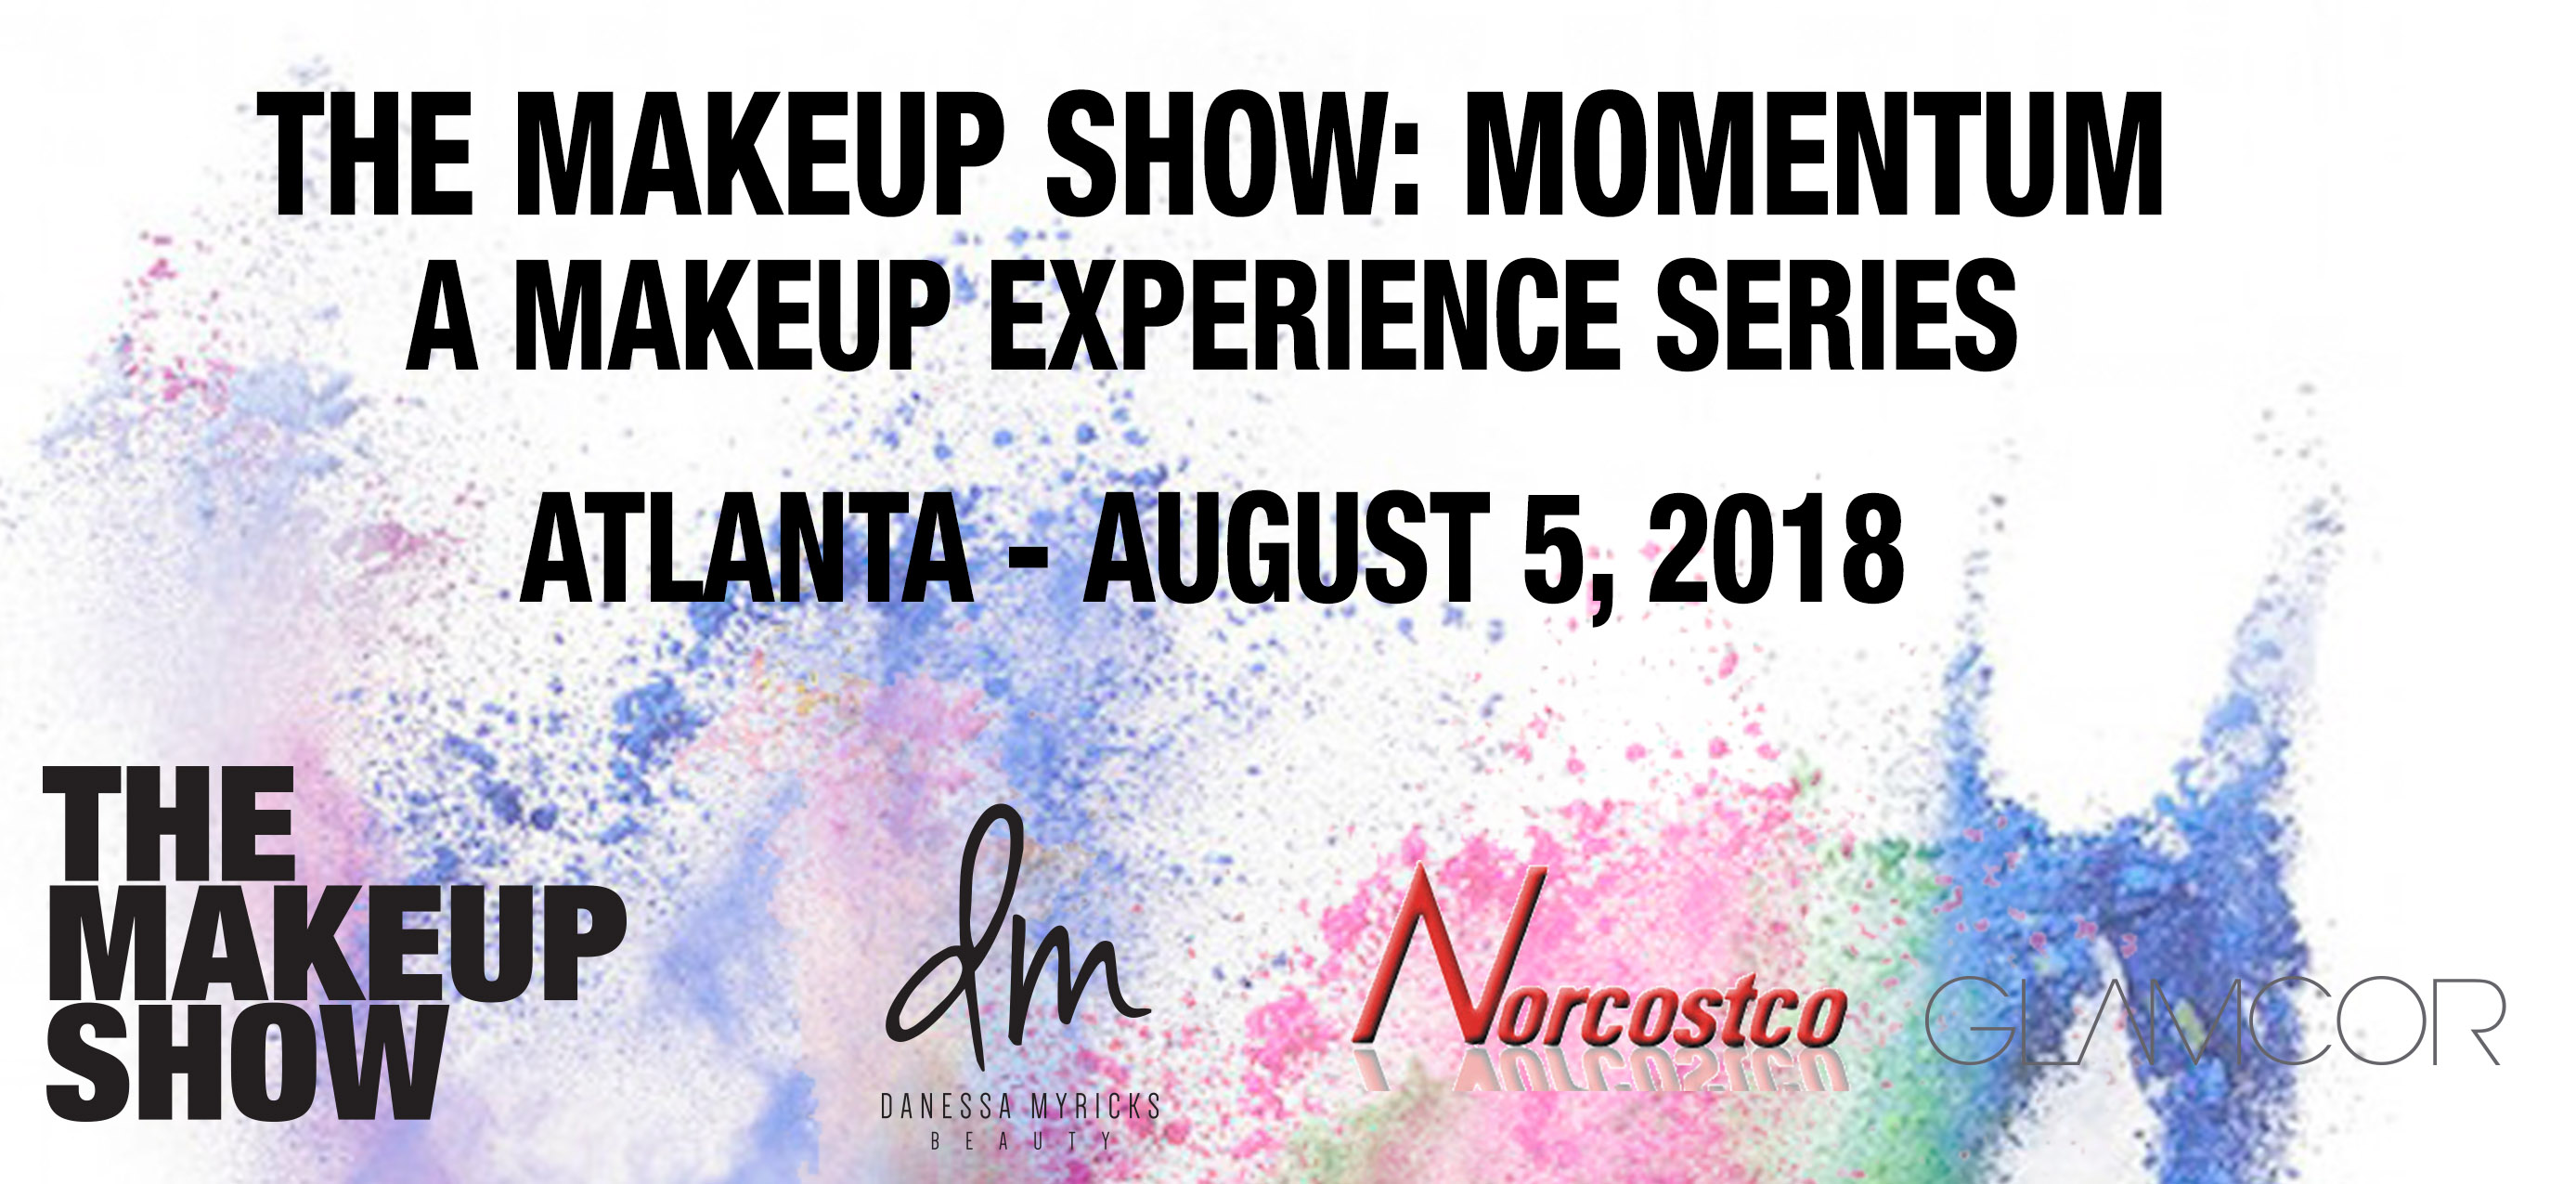 The Makeup Show: Momentum Atlanta